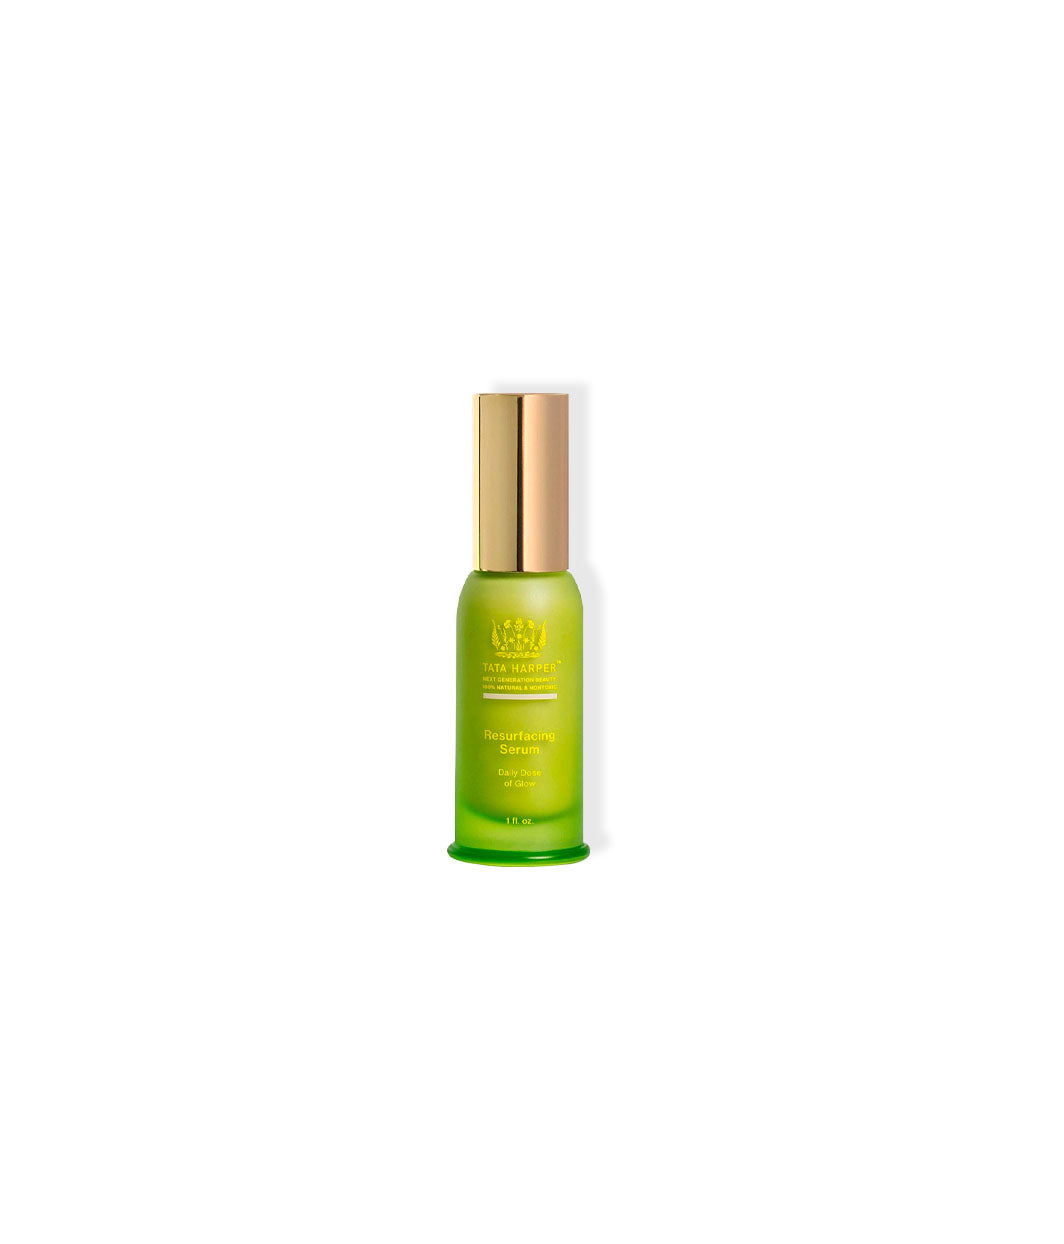 Resurfacing Serum - LEMON LAINE - Serums - Tata Harper